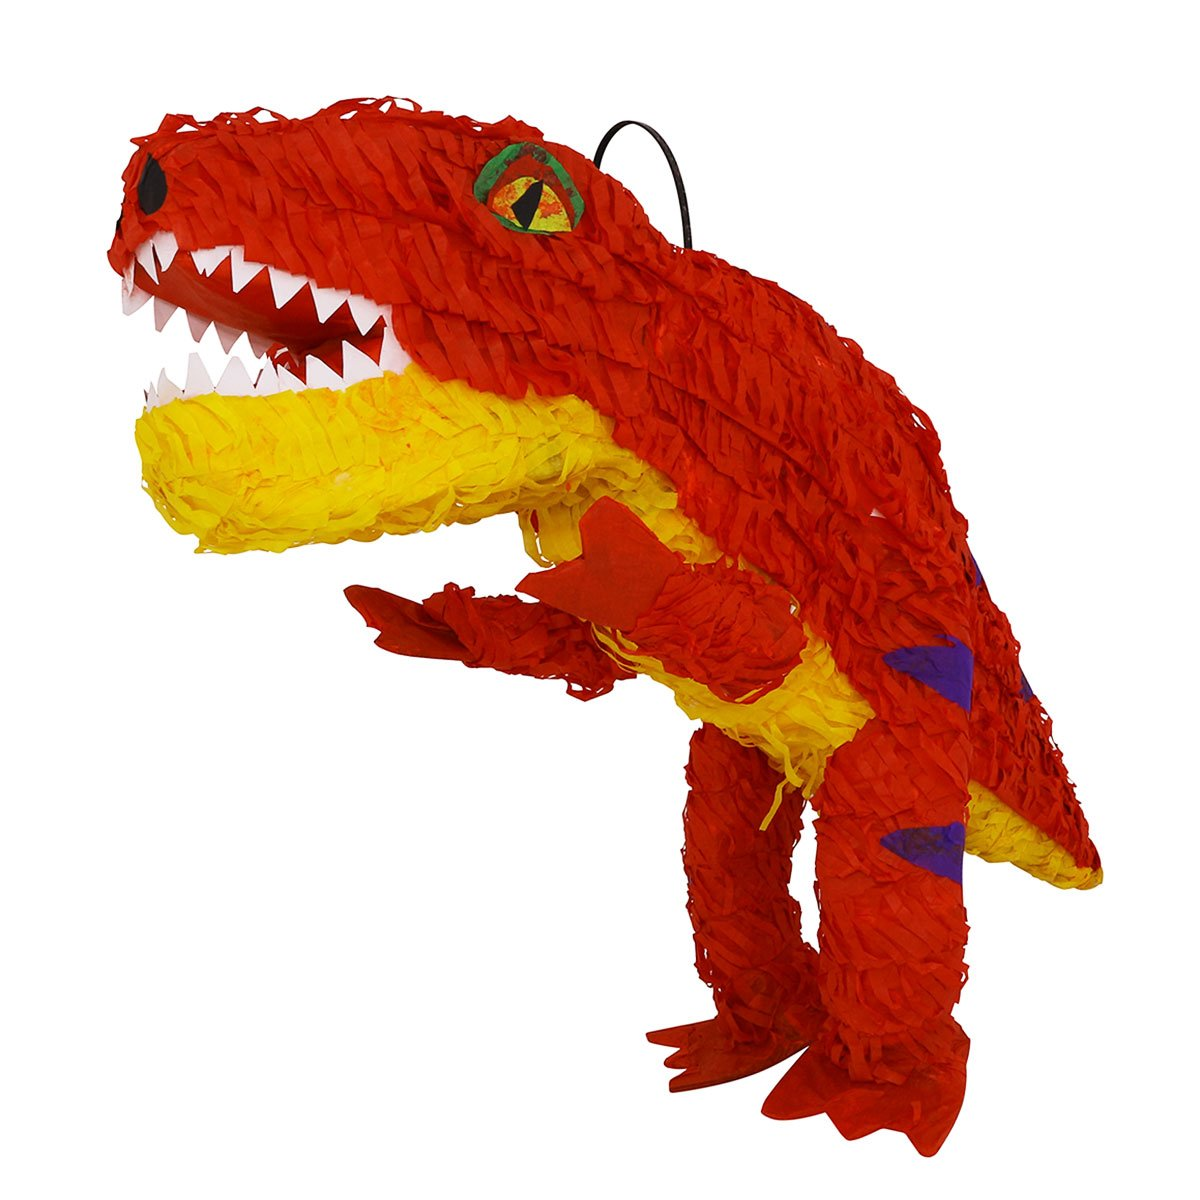 Dinosaur theme parties are more fun with an Aurabeam T-Rex piñata perfect for decoration or party games by Aurabeam